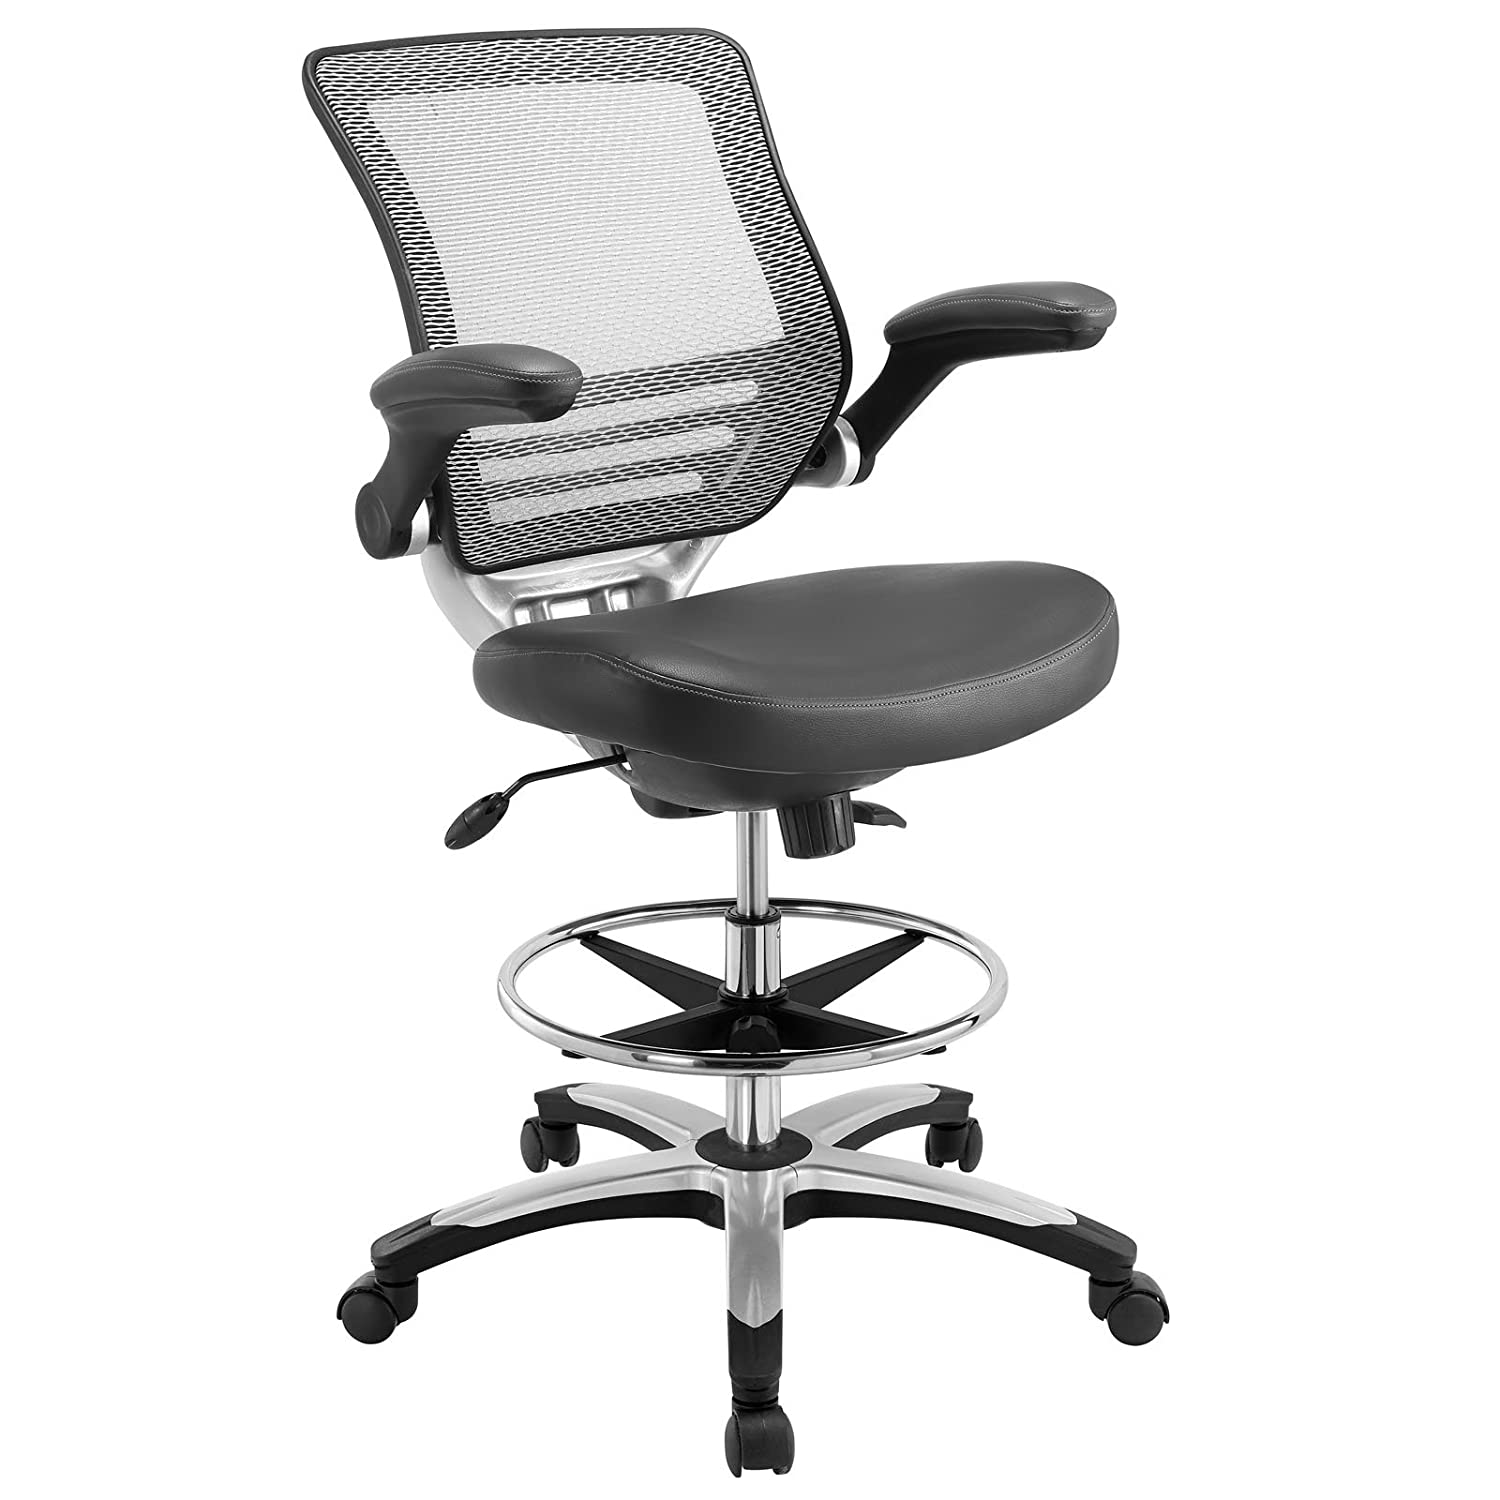 high optronk modern style chair astonishing back slider office chairs design modway home white furniture